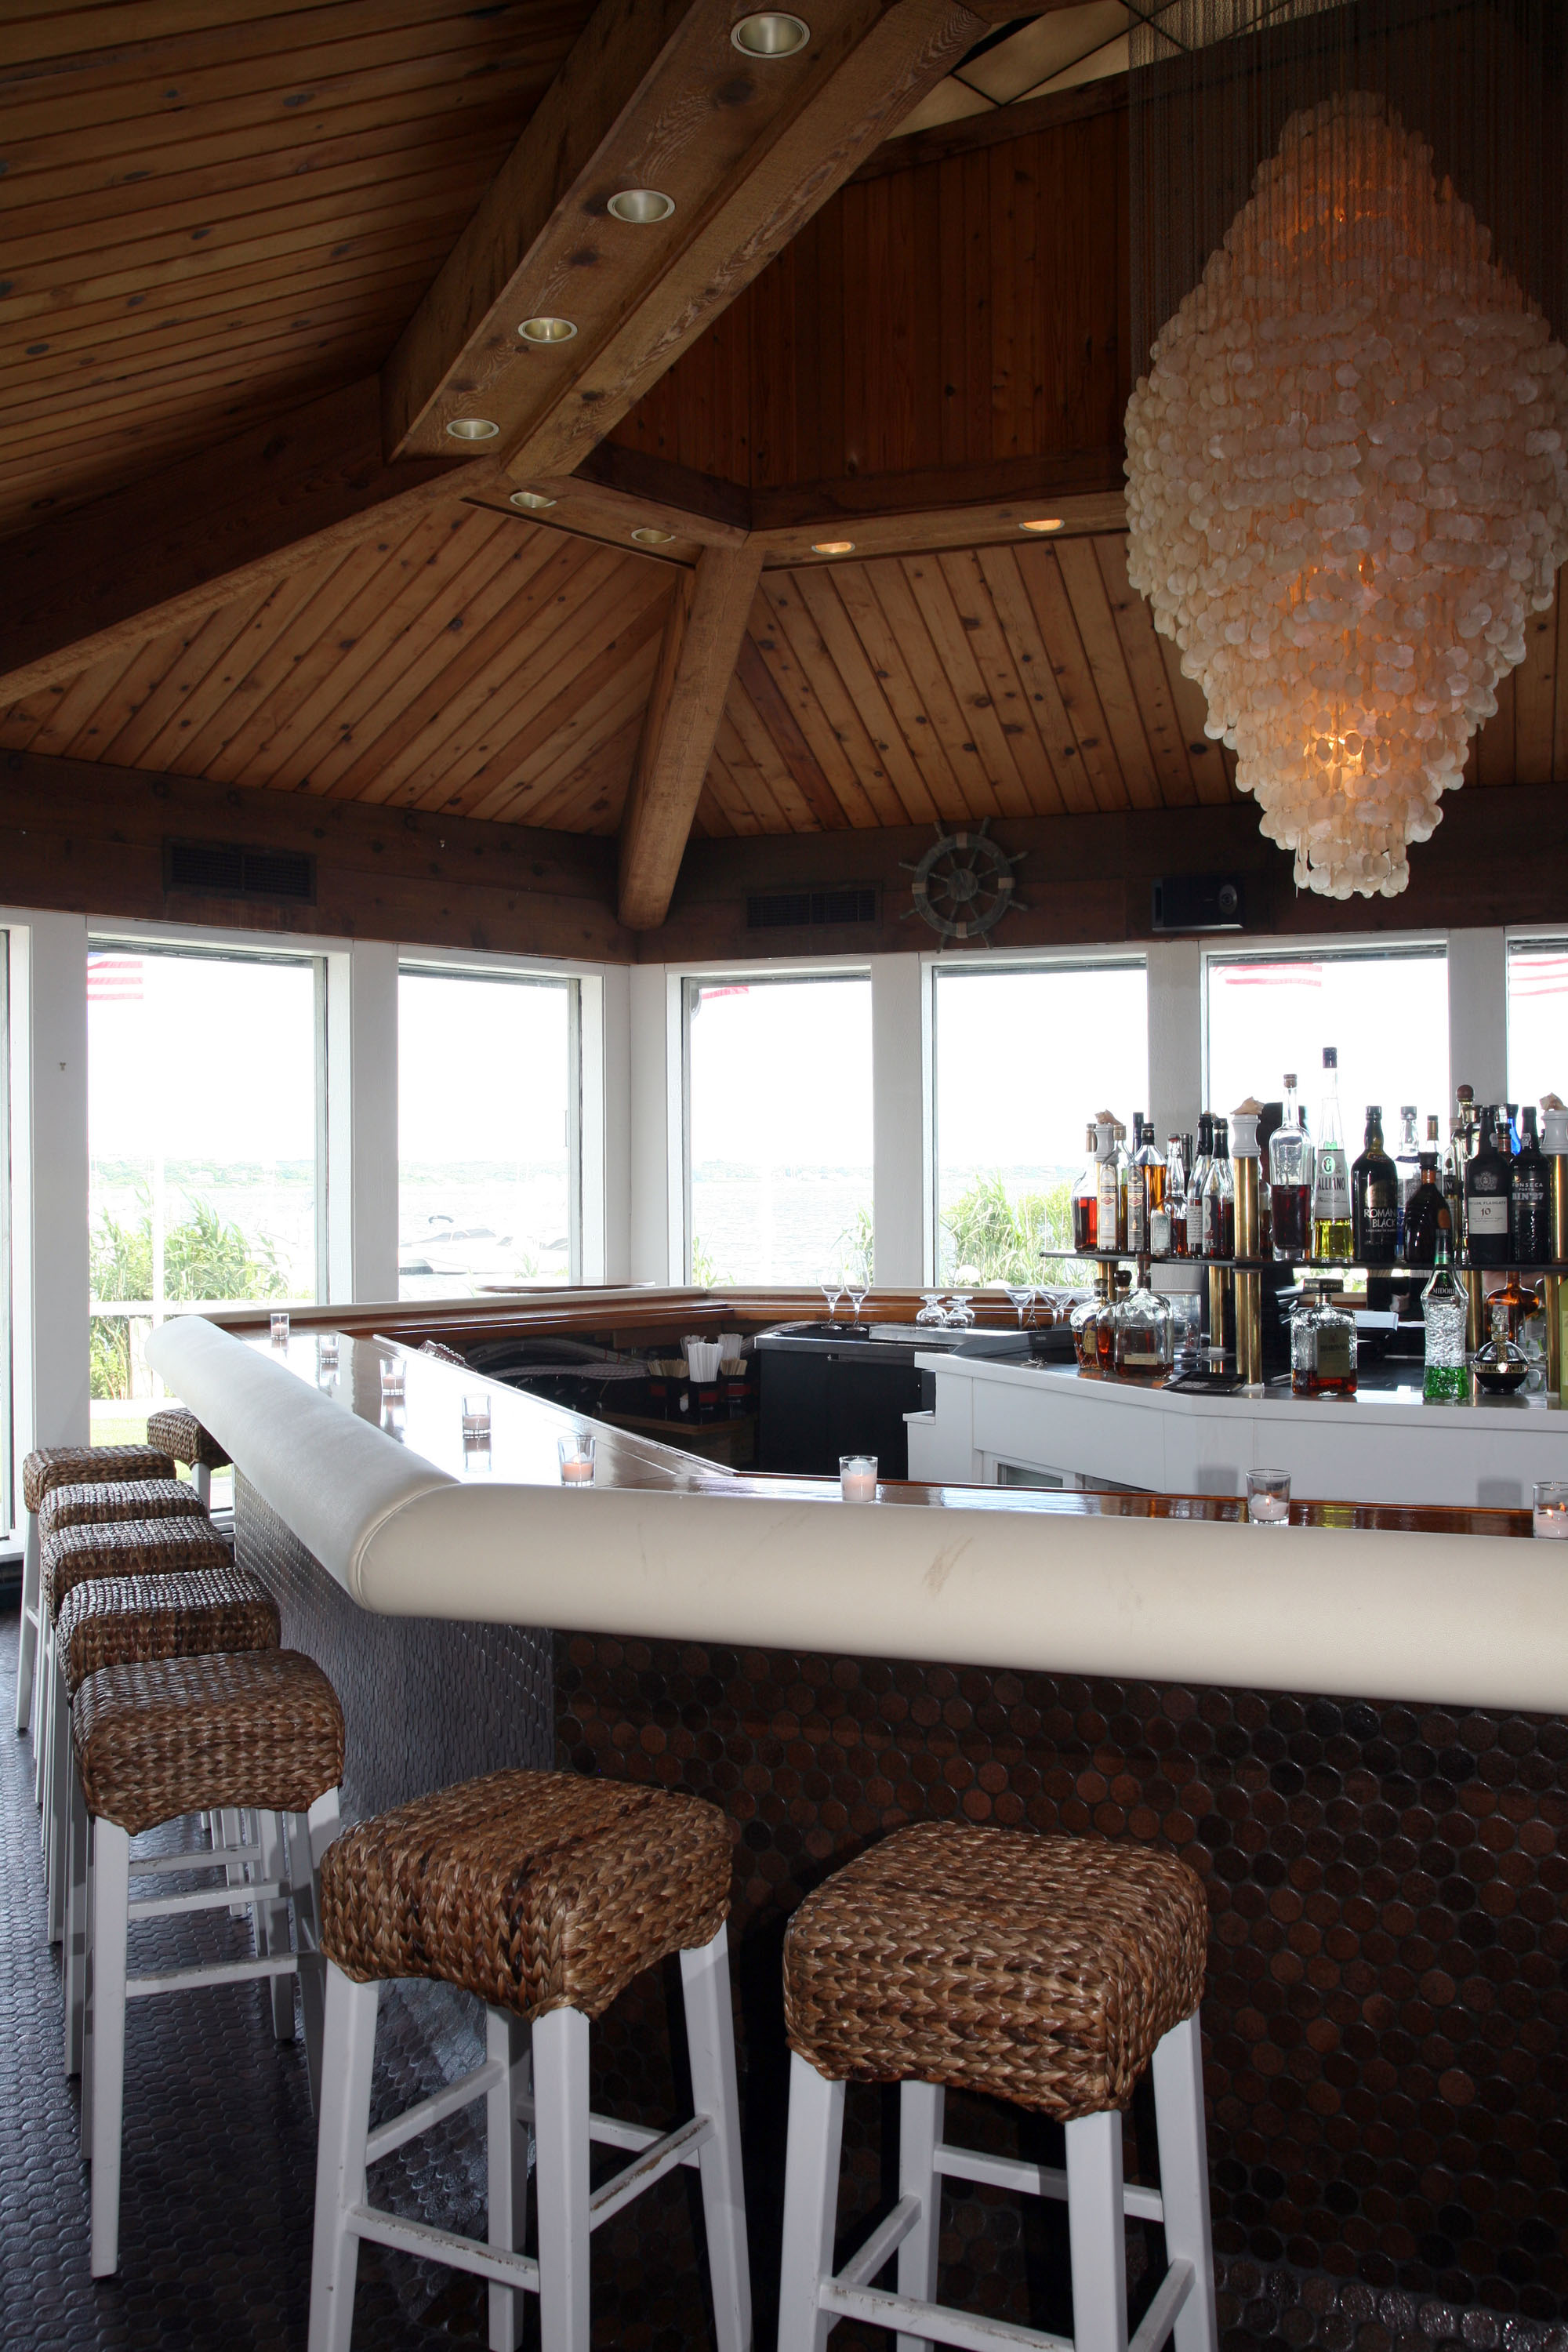 The Barracuda Bar at Montauk Yacht Club &amp; Resort